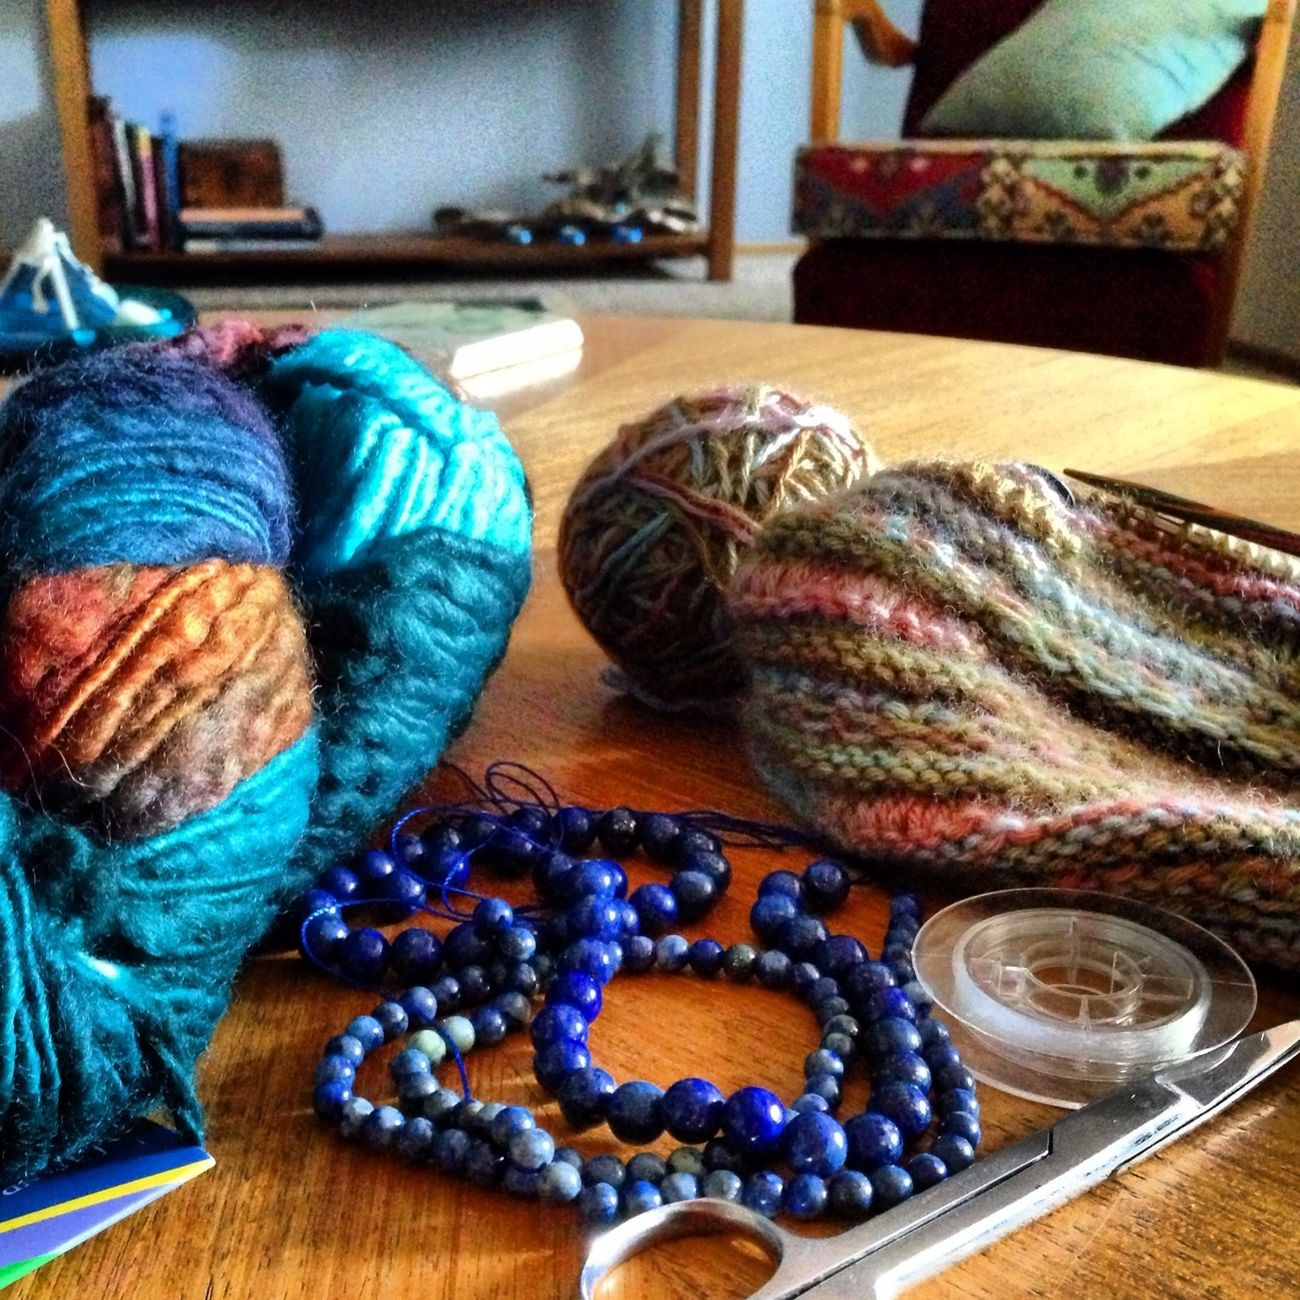 Day off - getting me a creativity fix! Yarn Knittingfrenzy Chickswithsticks Onyourneedles